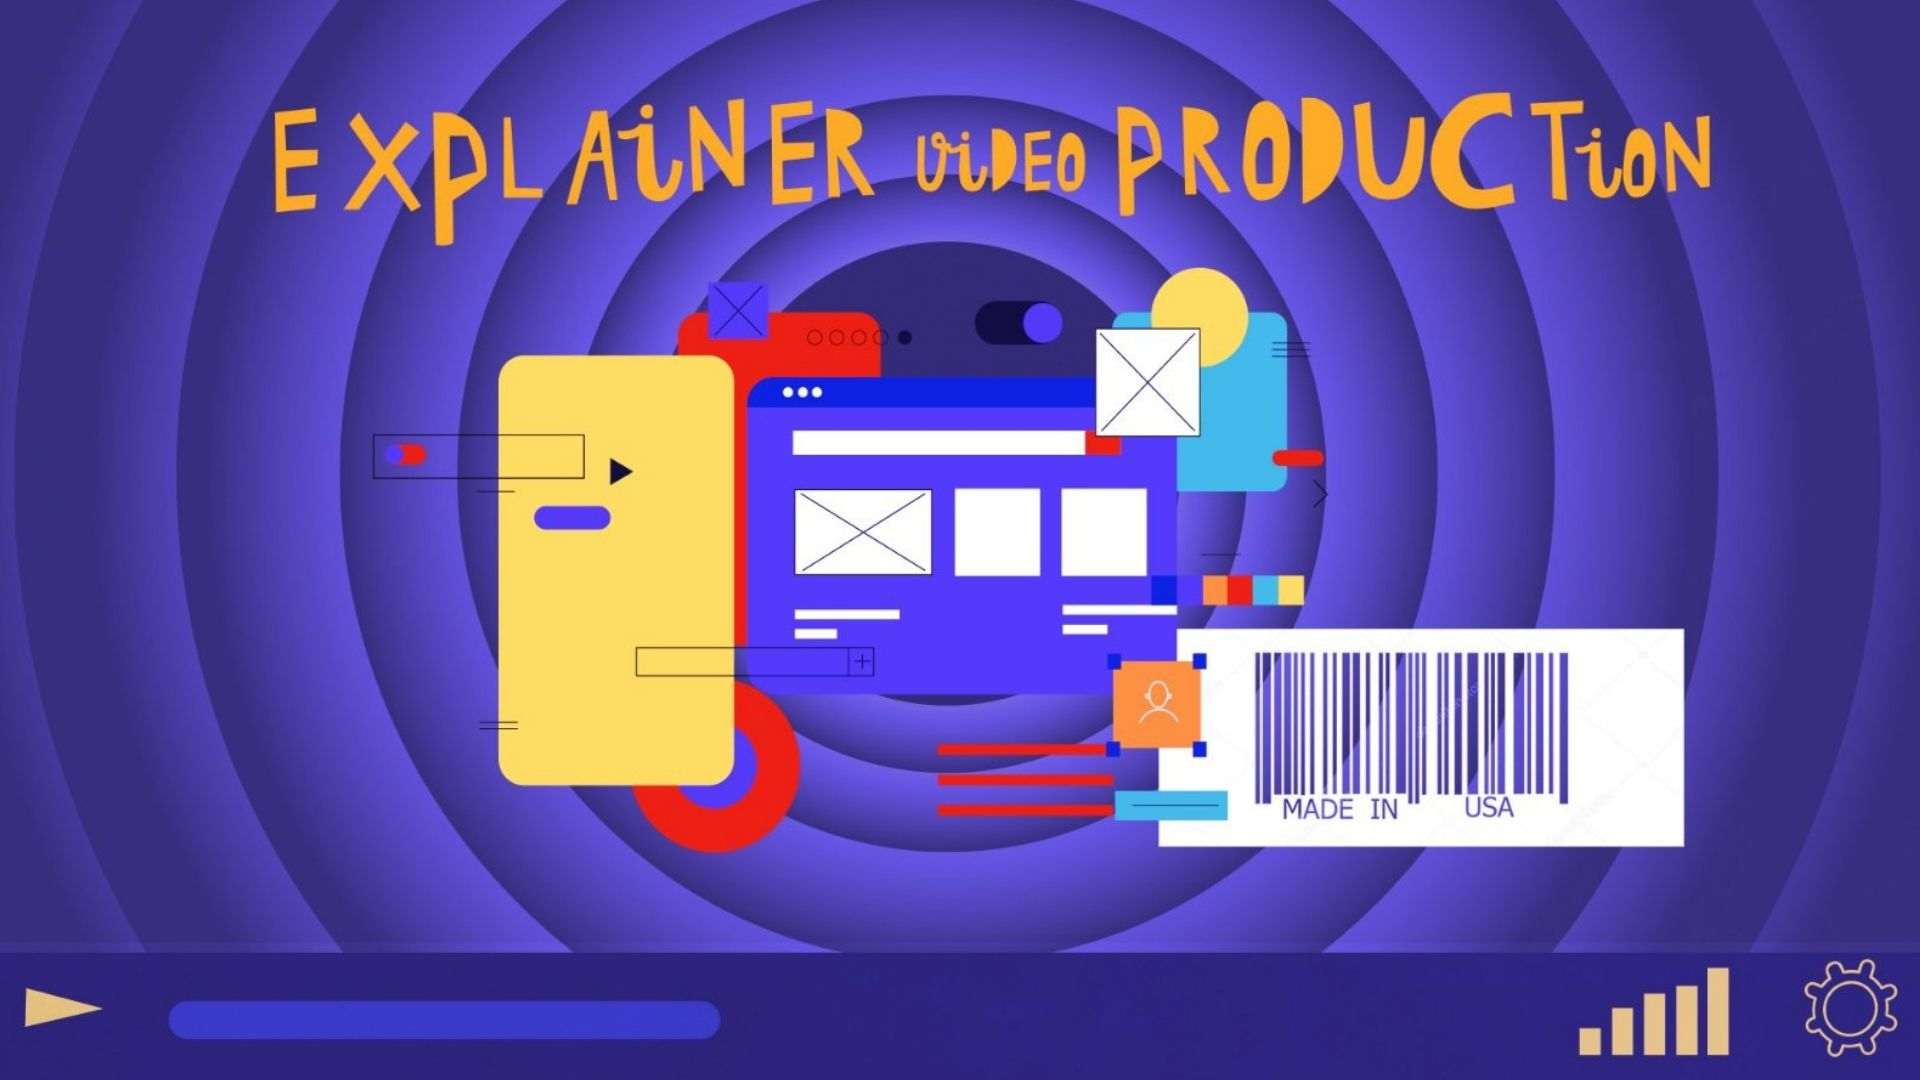 Explainer Video Production Companies in the U.S.